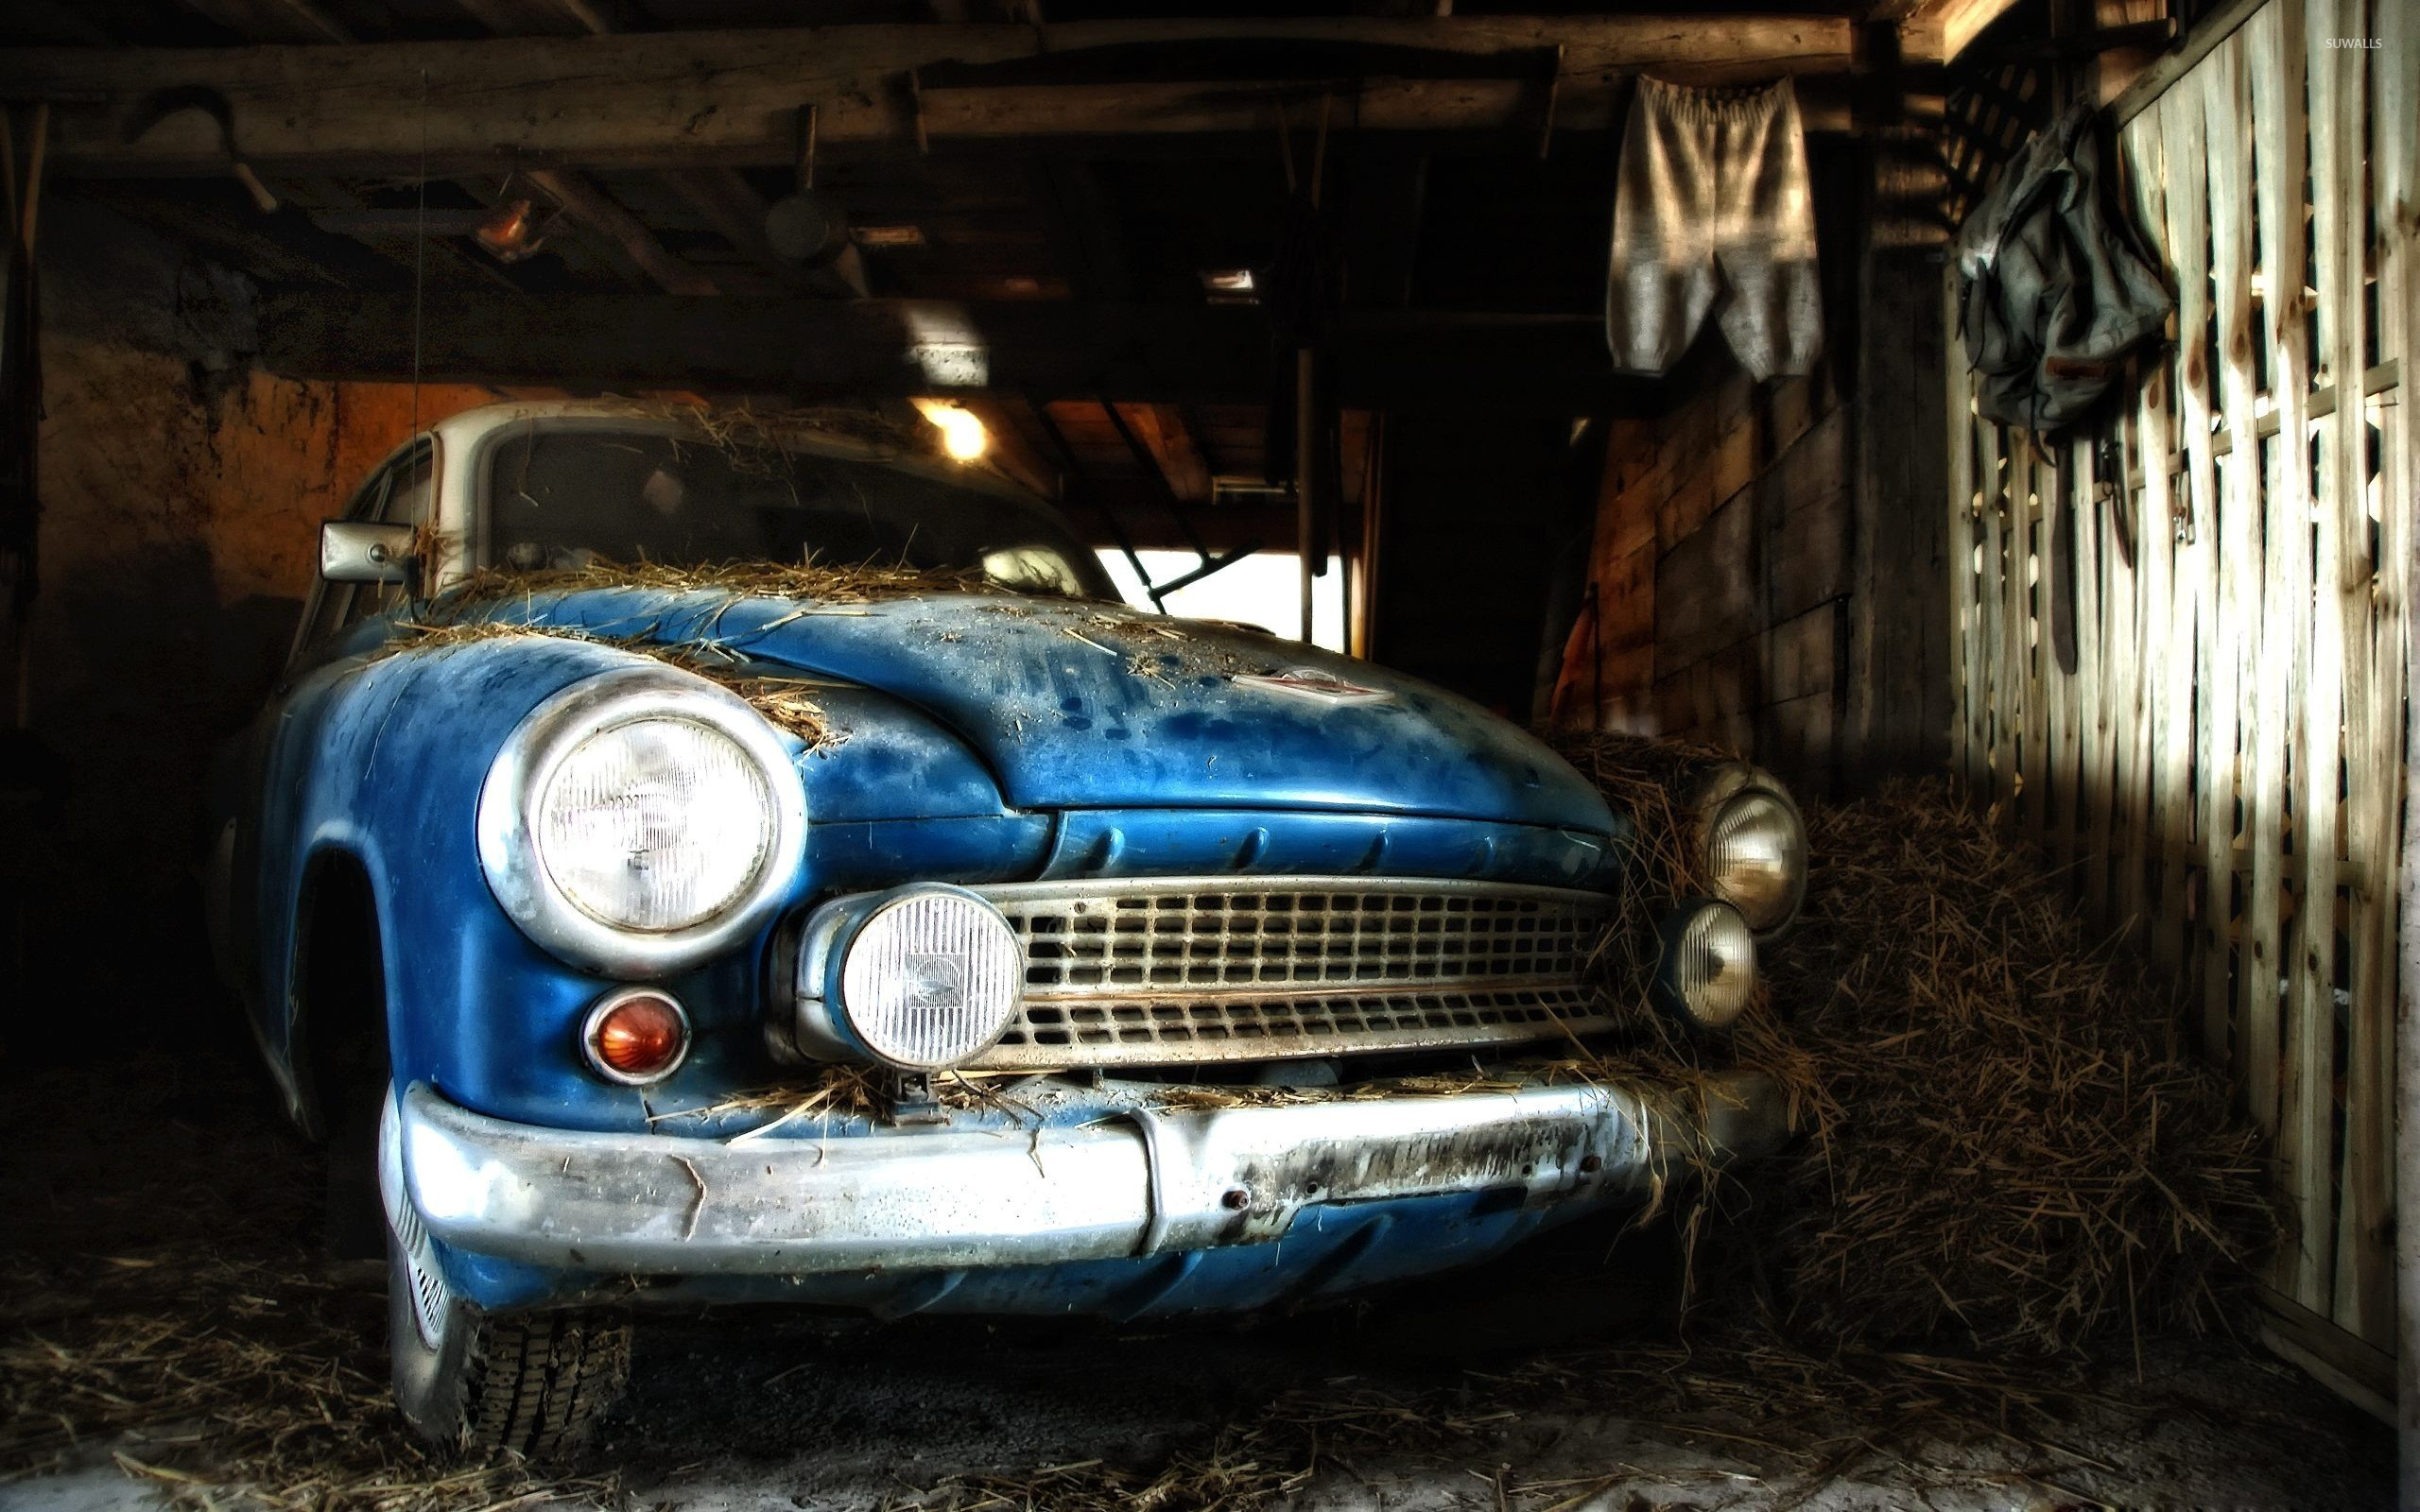 Res: 2560x1600, Old car in barn wallpaper